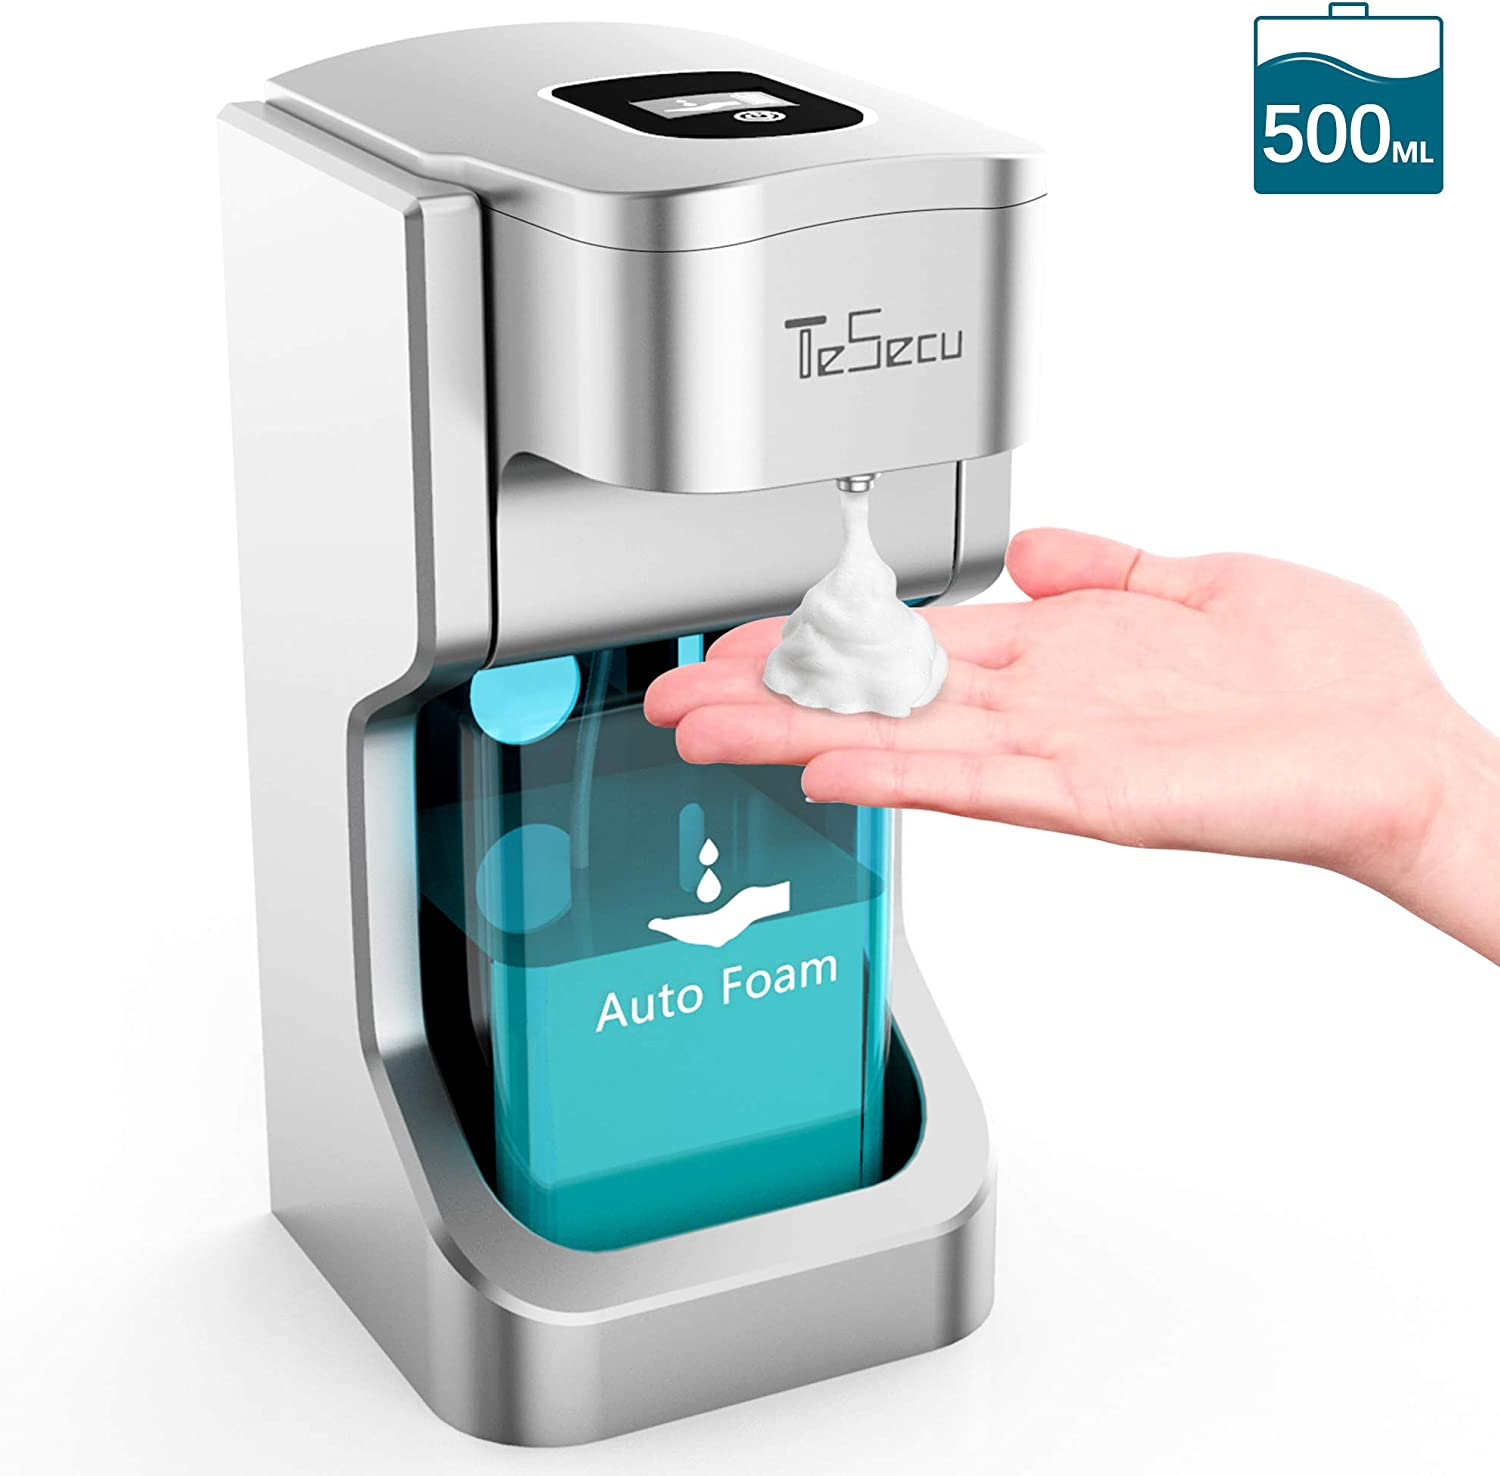 TESECU Automatic Soap Dispenser Touchless Foaming Soap Dispenser Bath Kitchen Countertop Soap Dispenser with Infrared Motion Sensor, Waterproof, 500ml Large Capacity